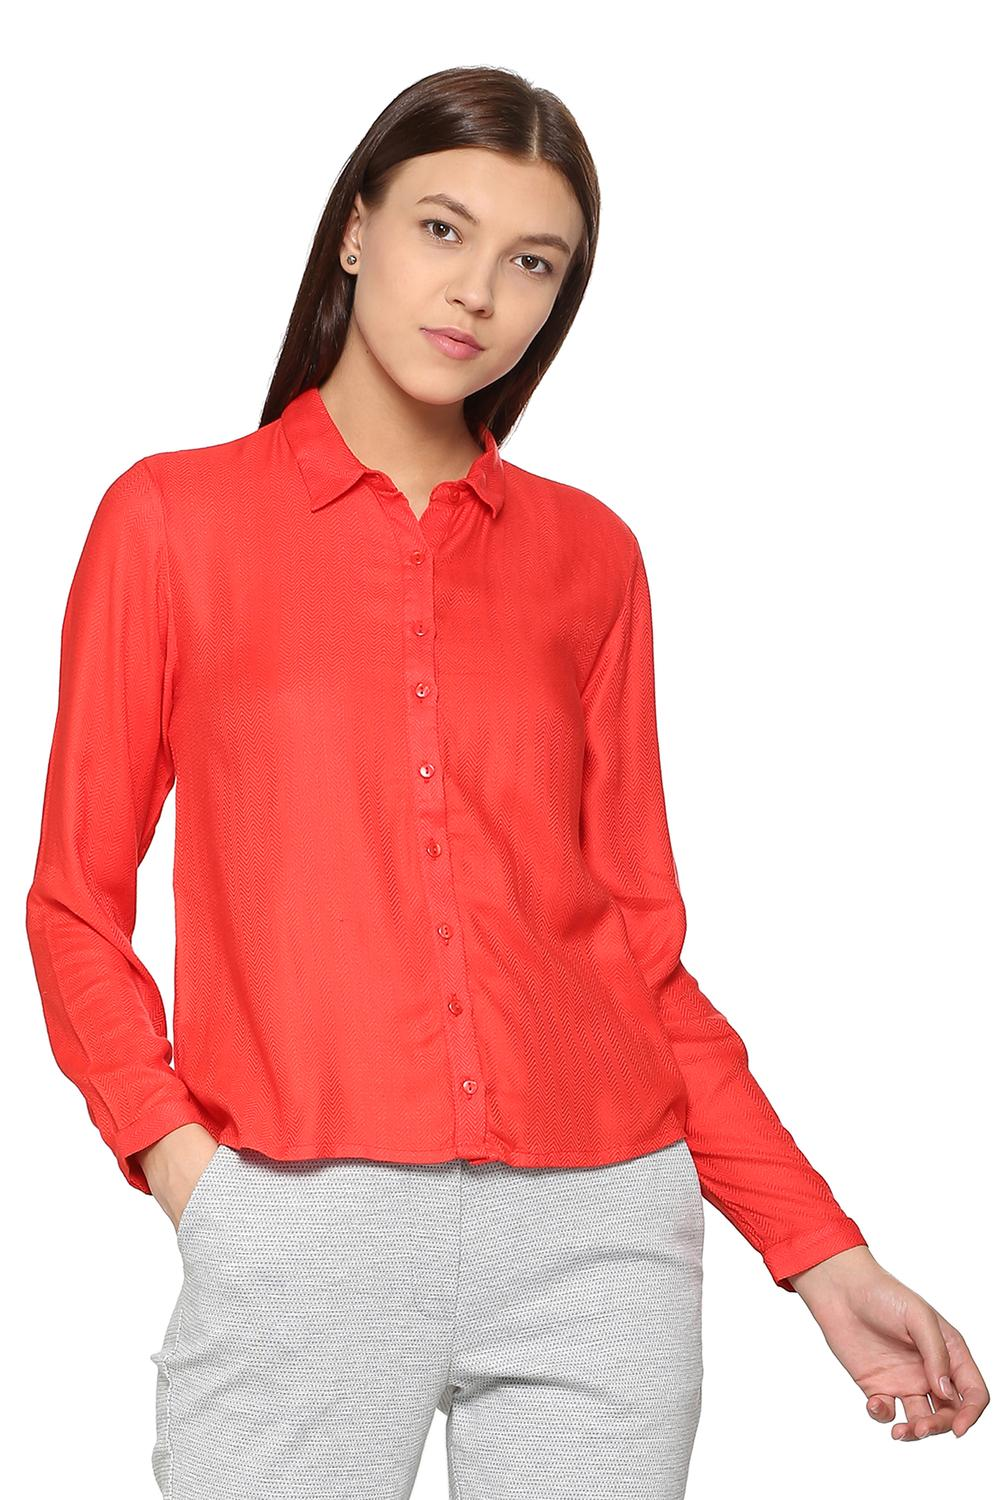 9beead472c Solly Shirts & Blouses, Allen Solly Red Shirt for Women at Allensolly.com